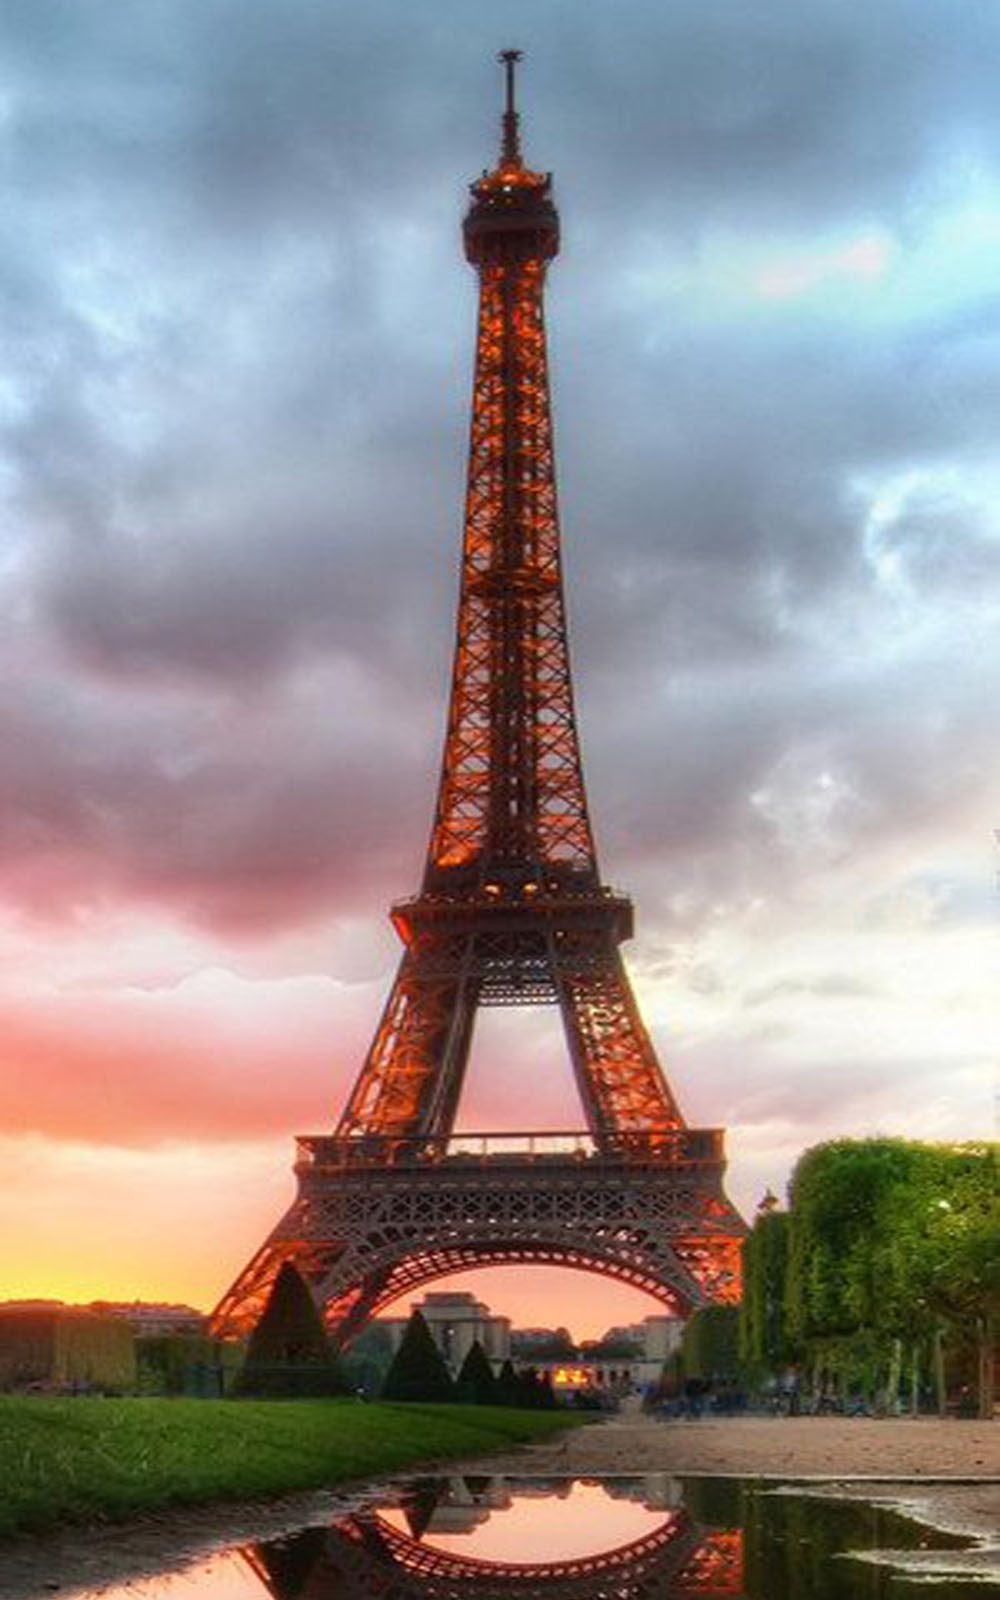 Quotes Evening Wallpaper Download Eiffel Tower Sunset View Free Pure 4k Ultra Hd